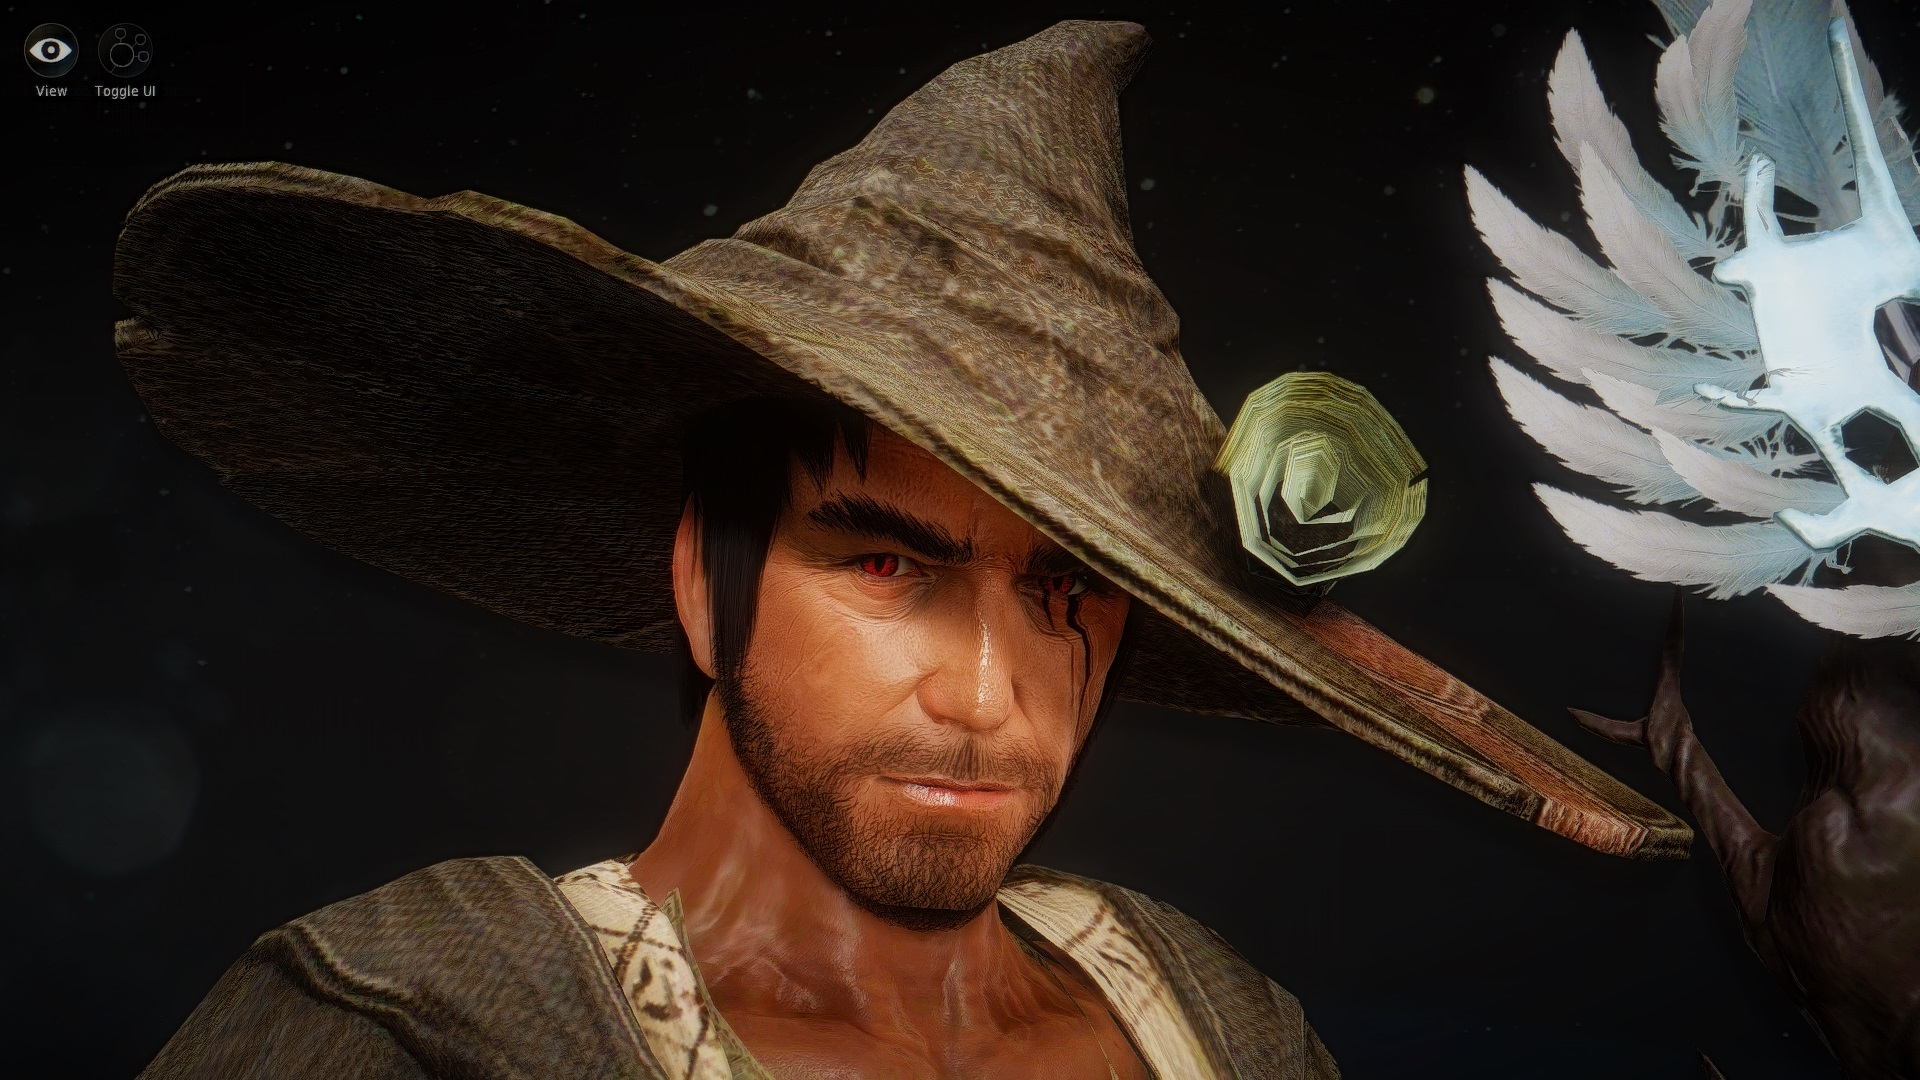 Wizard Guide - Guide to all classes in Black Desert Online